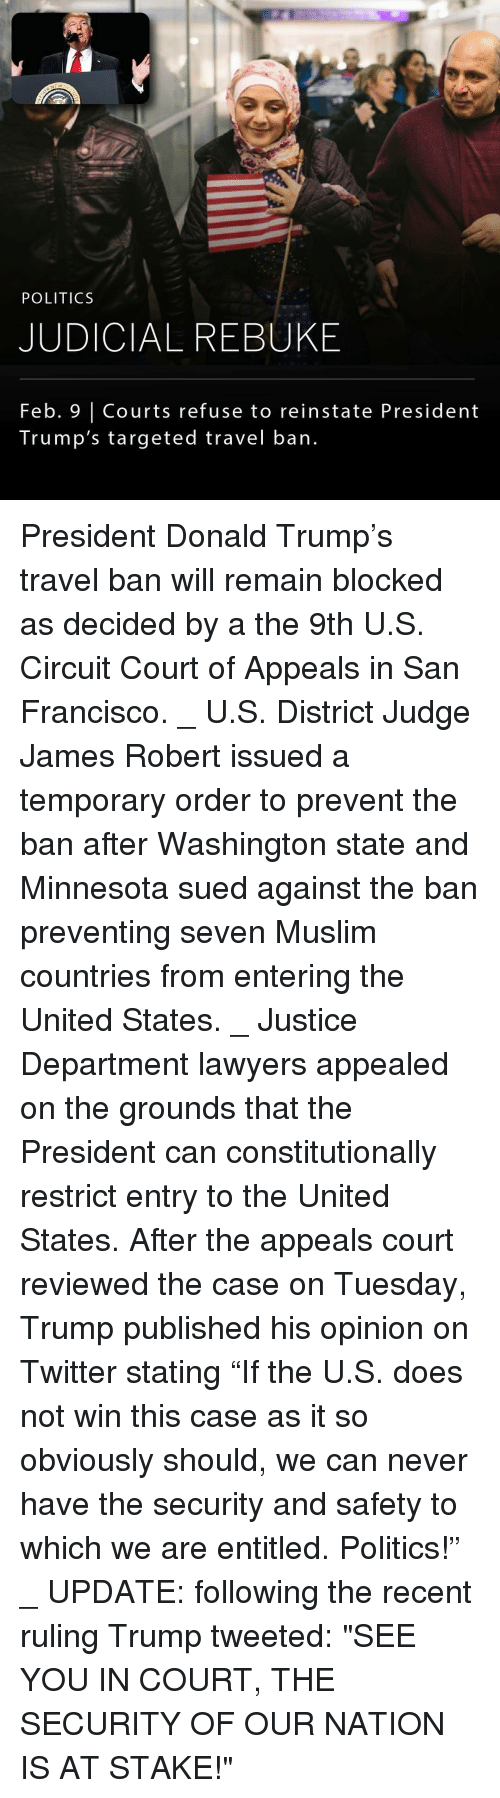 """entitlement: POLITICS  JUDICIAL REBUKE  Feb. Courts refuse to reinstate President  Trump's targeted travel ban. President Donald Trump's travel ban will remain blocked as decided by a the 9th U.S. Circuit Court of Appeals in San Francisco. _ U.S. District Judge James Robert issued a temporary order to prevent the ban after Washington state and Minnesota sued against the ban preventing seven Muslim countries from entering the United States. _ Justice Department lawyers appealed on the grounds that the President can constitutionally restrict entry to the United States. After the appeals court reviewed the case on Tuesday, Trump published his opinion on Twitter stating """"If the U.S. does not win this case as it so obviously should, we can never have the security and safety to which we are entitled. Politics!"""" _ UPDATE: following the recent ruling Trump tweeted: """"SEE YOU IN COURT, THE SECURITY OF OUR NATION IS AT STAKE!"""""""